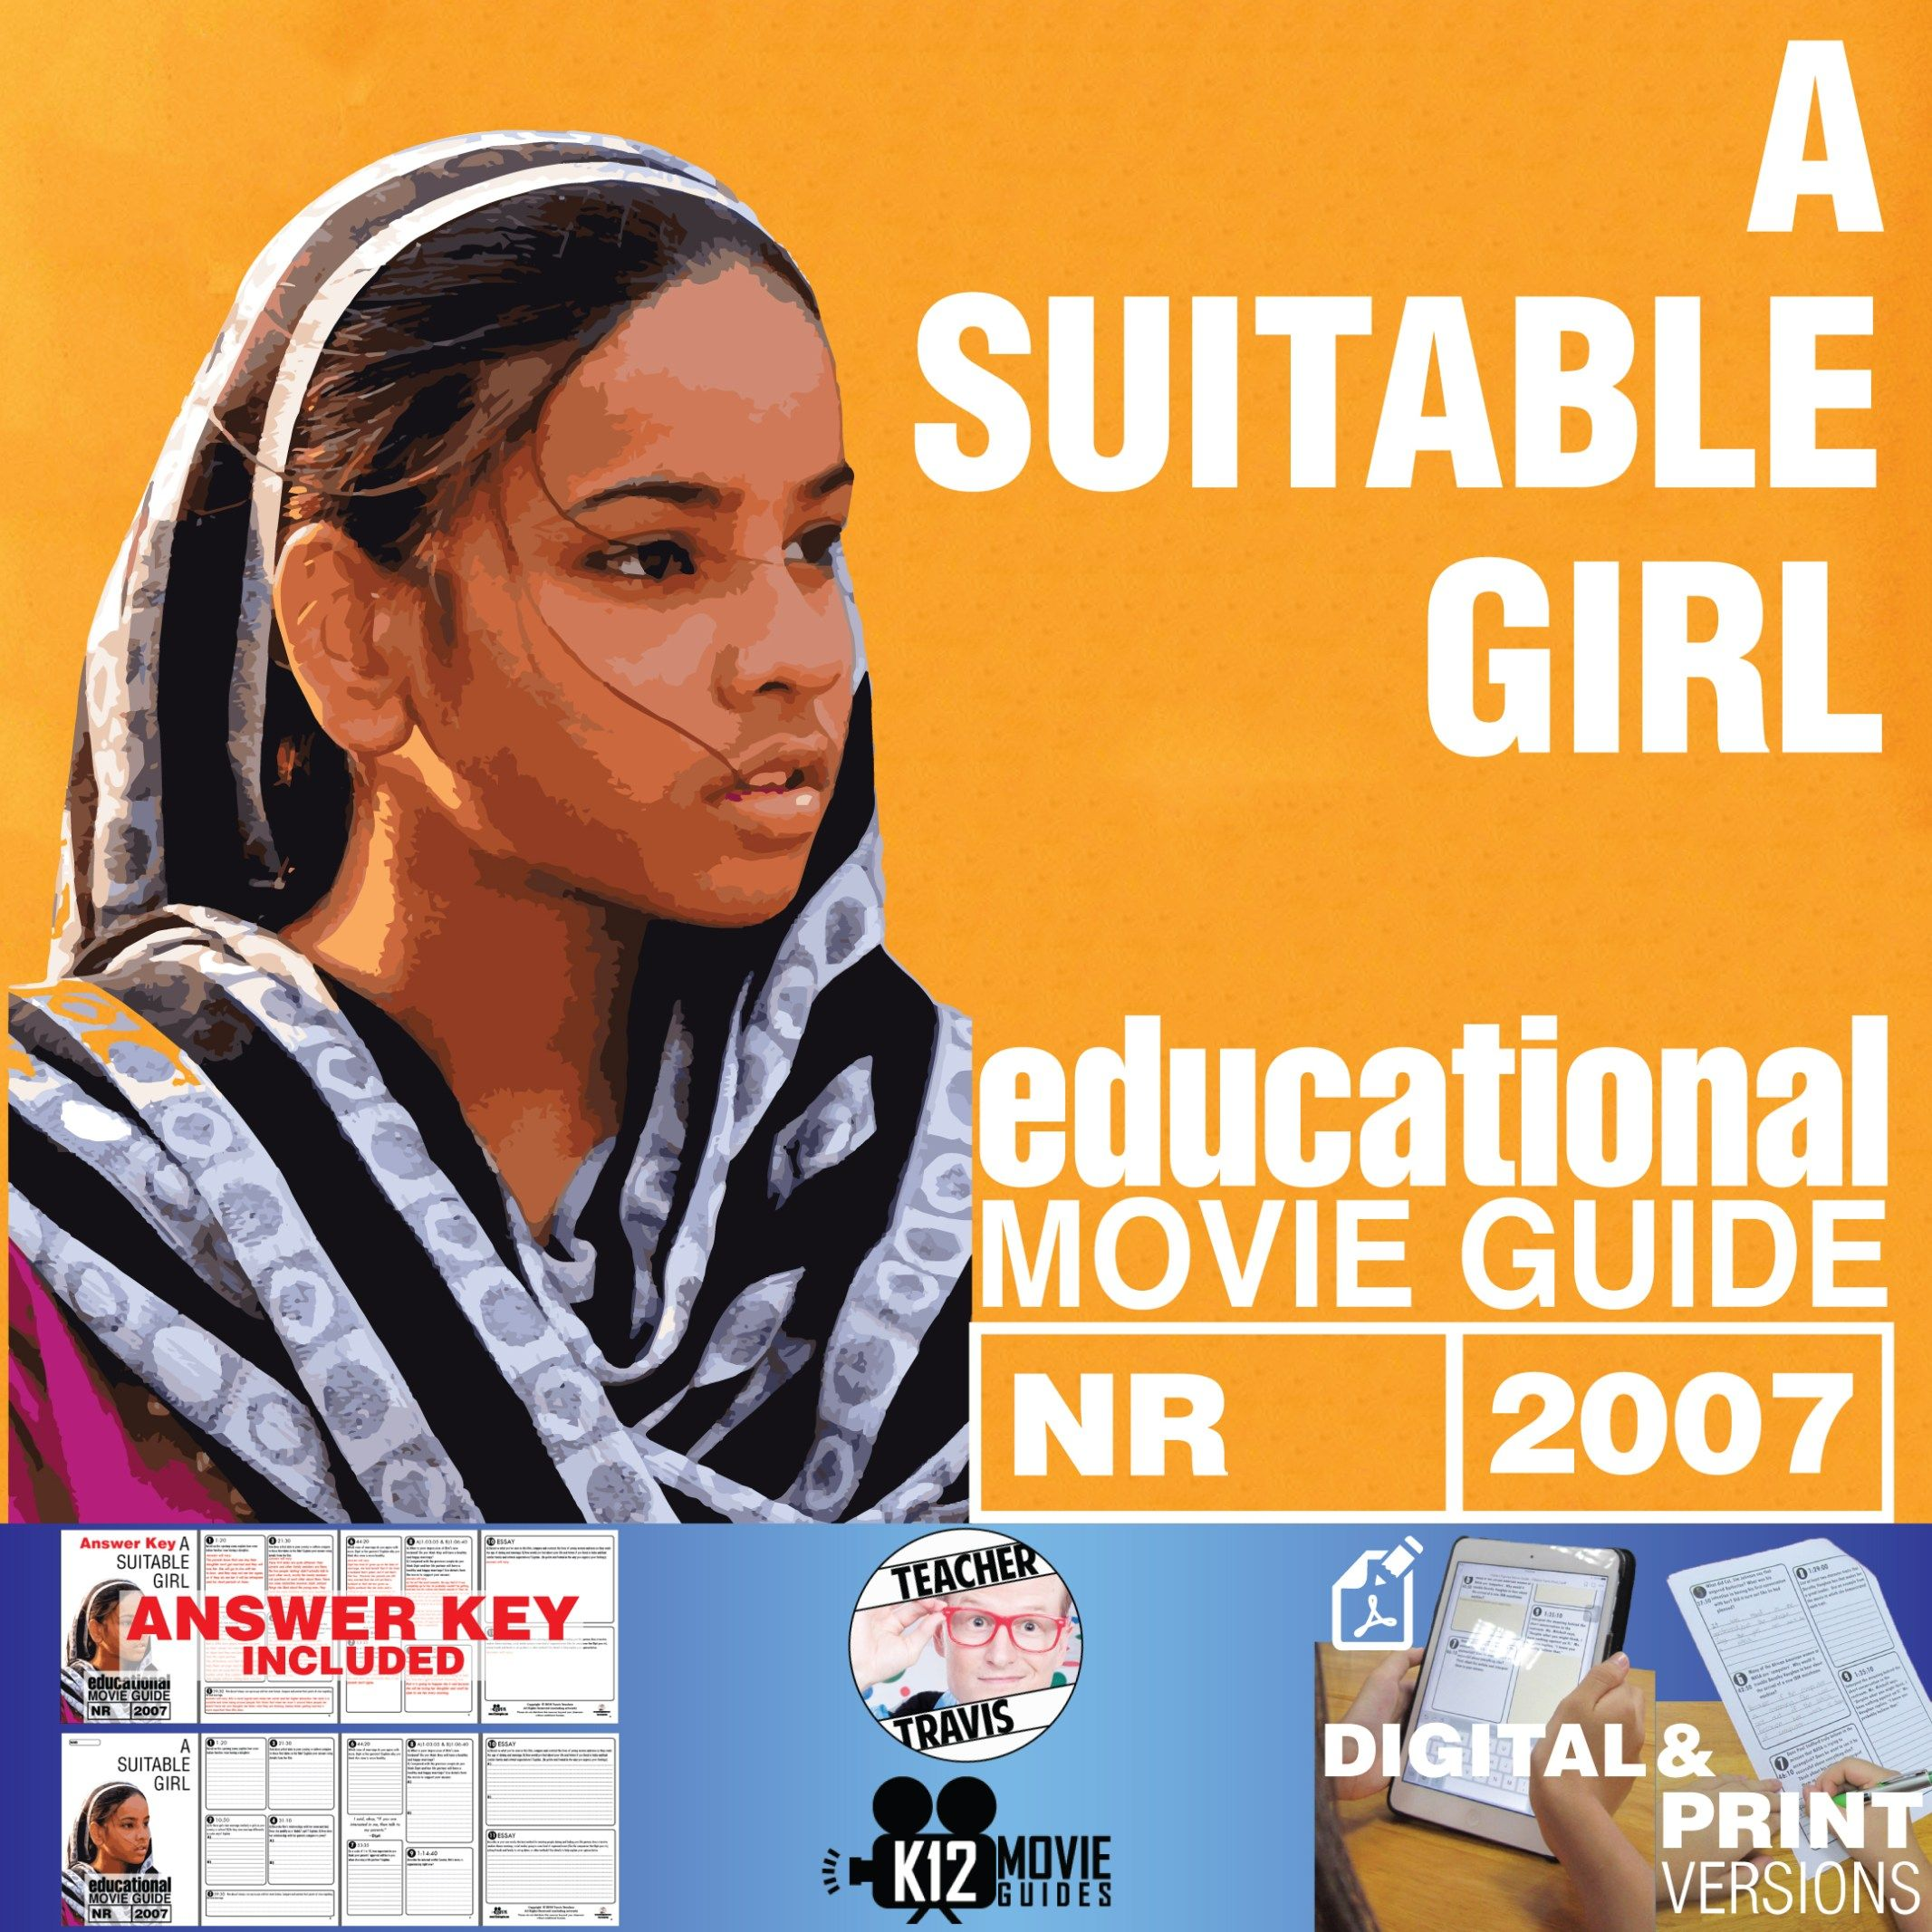 A Suitable Girl Documentary Movie Guide